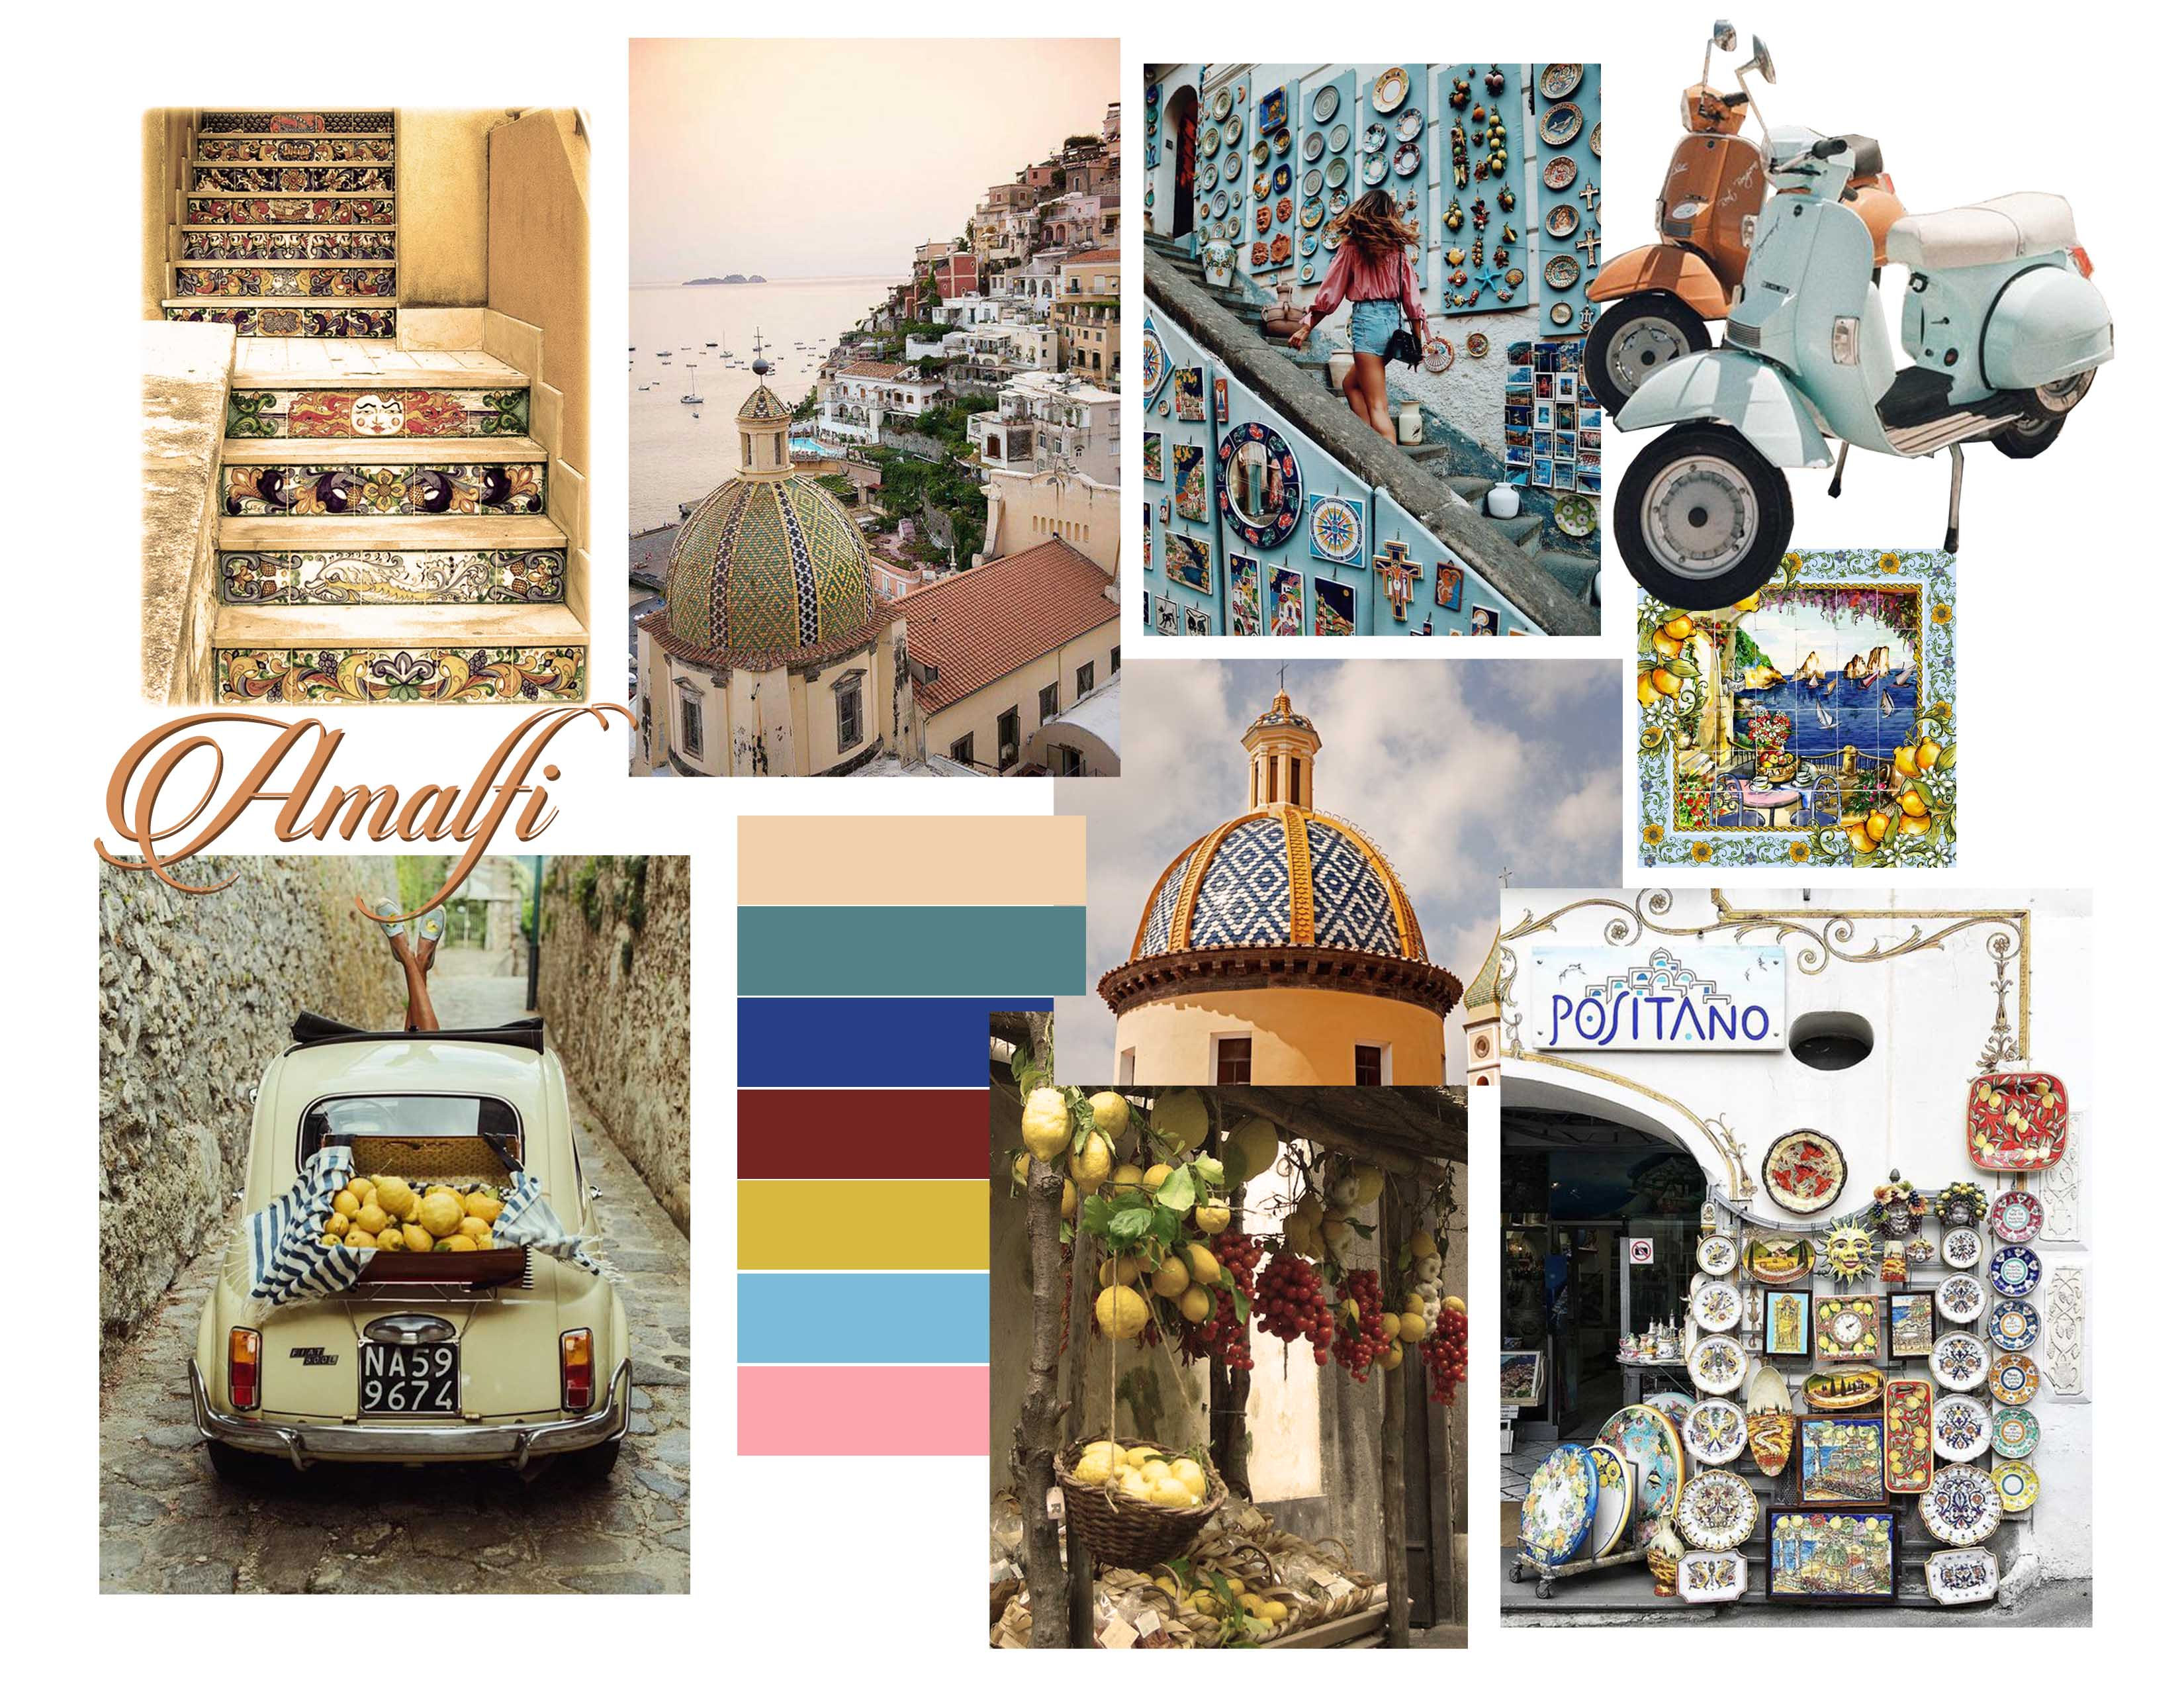 Amalfi coast travel plan: Take a blue vespa through the snaking lanes of Amalfi.